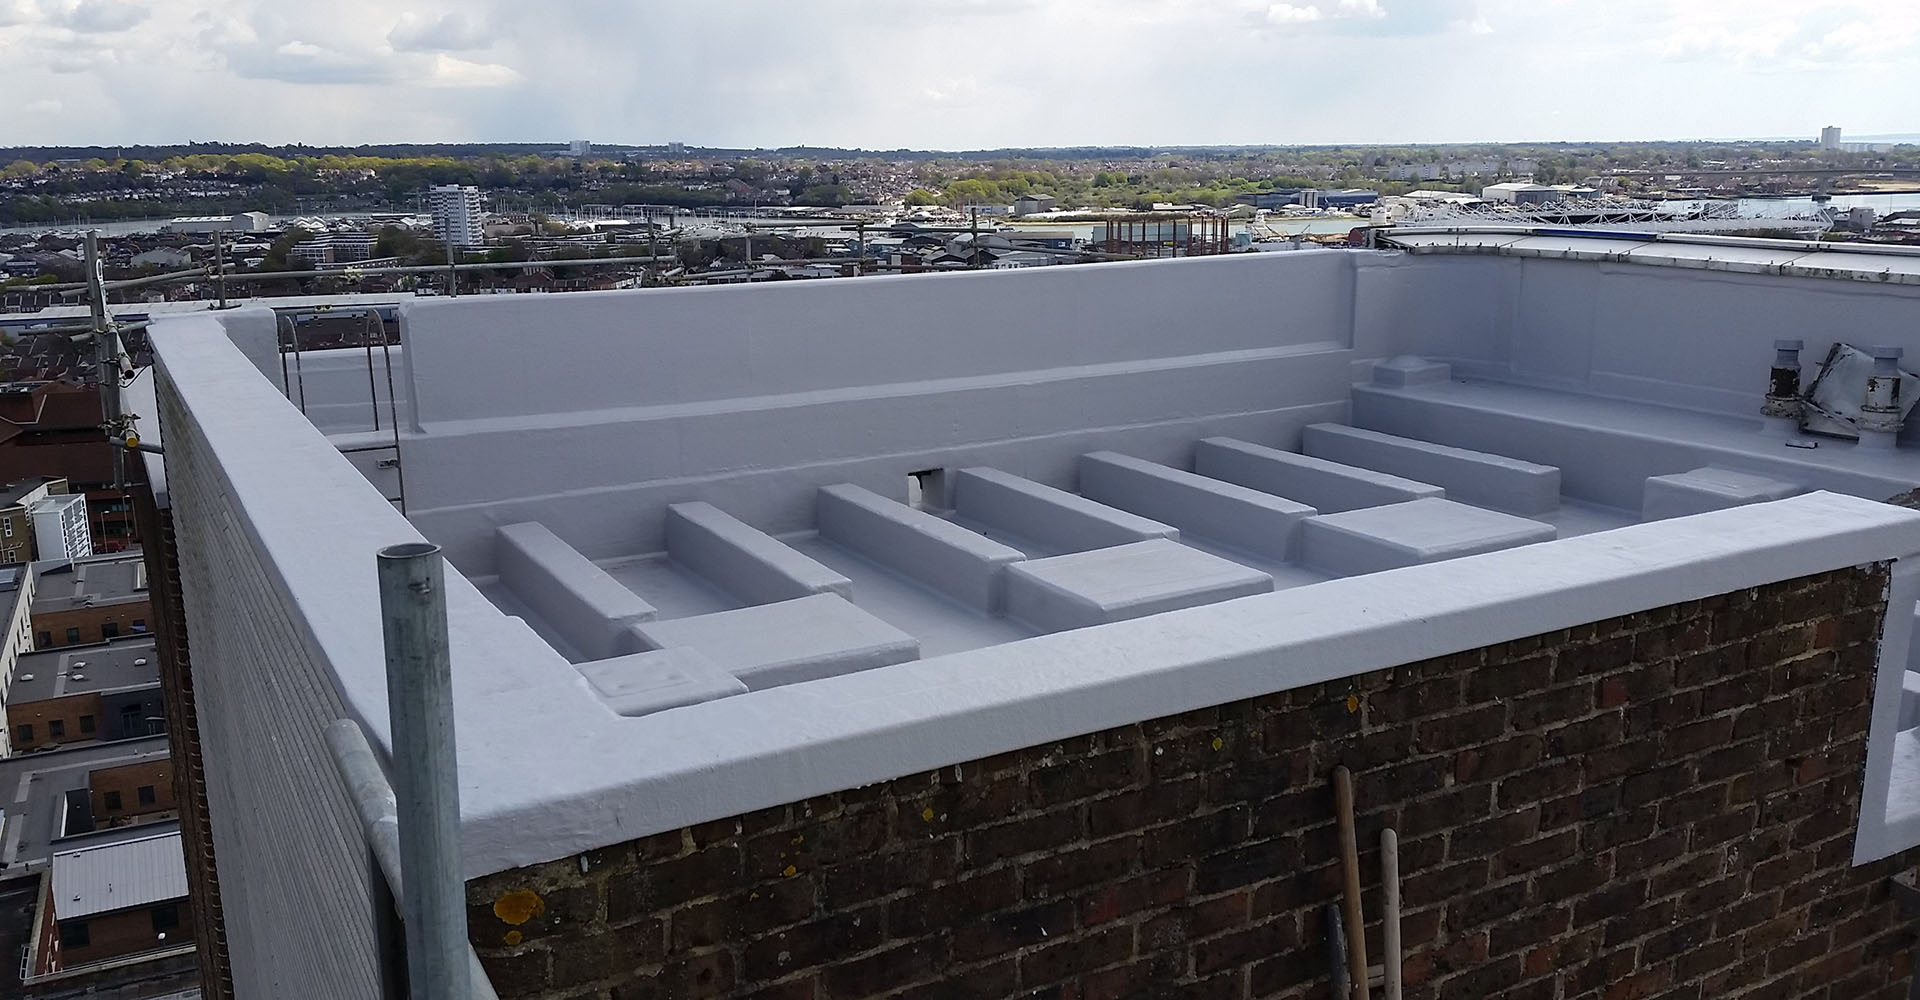 Polyroof's Protec system for student accommodation